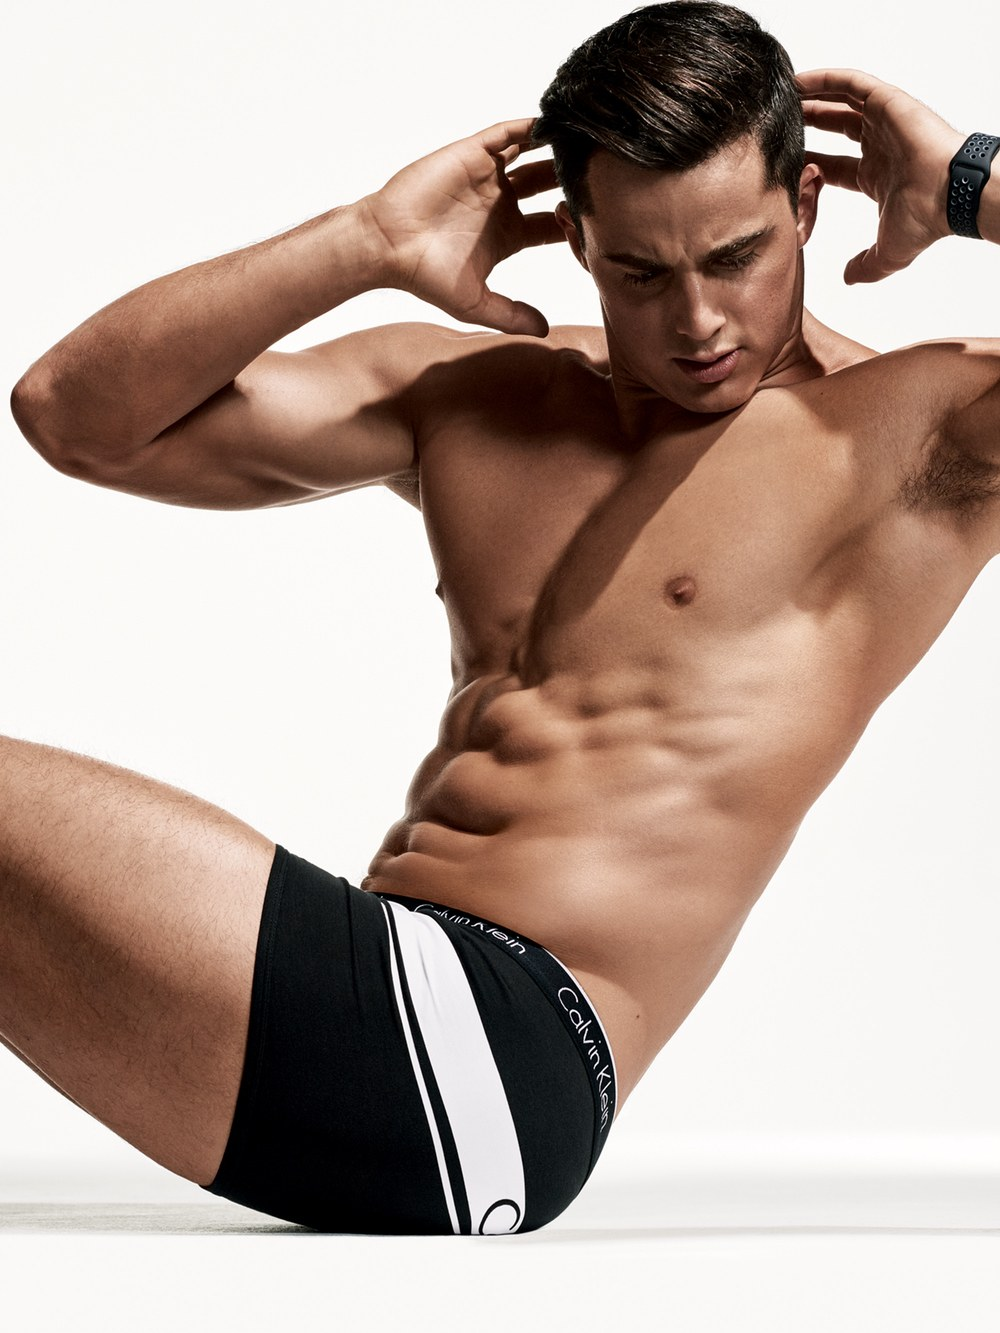 Pietro Boselli for GQ US 3